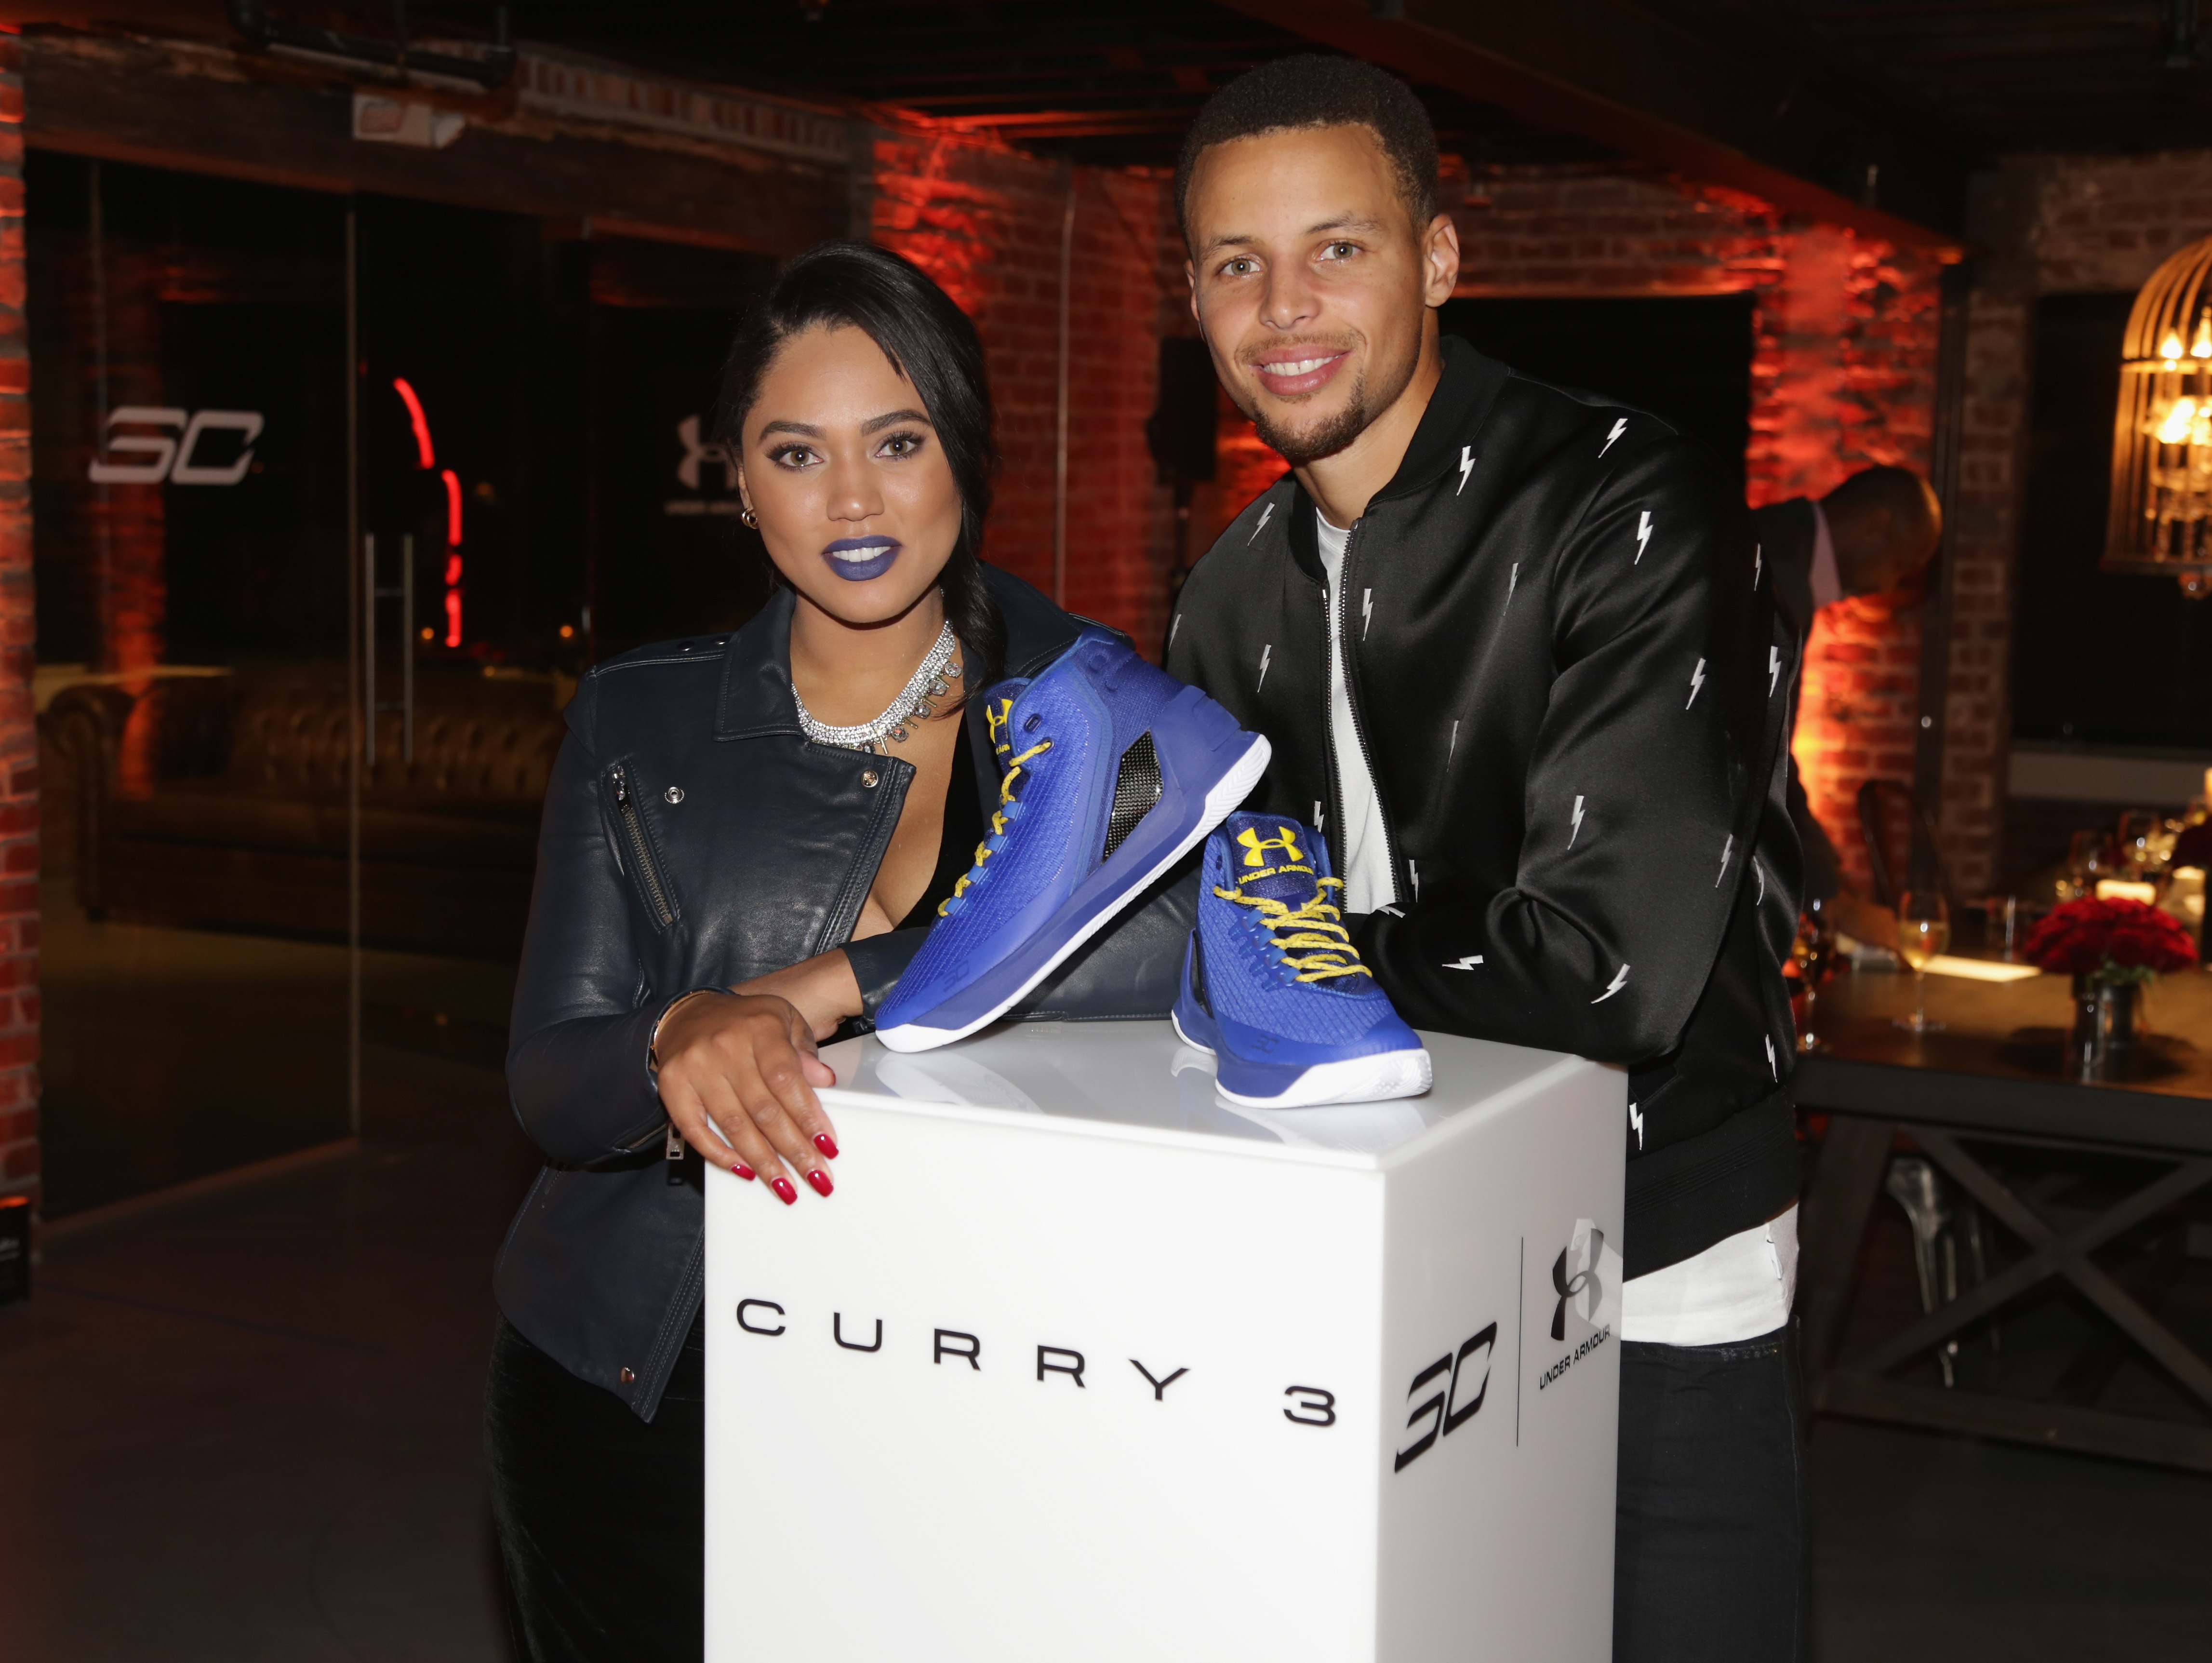 Under Armour Curry 3 Launch